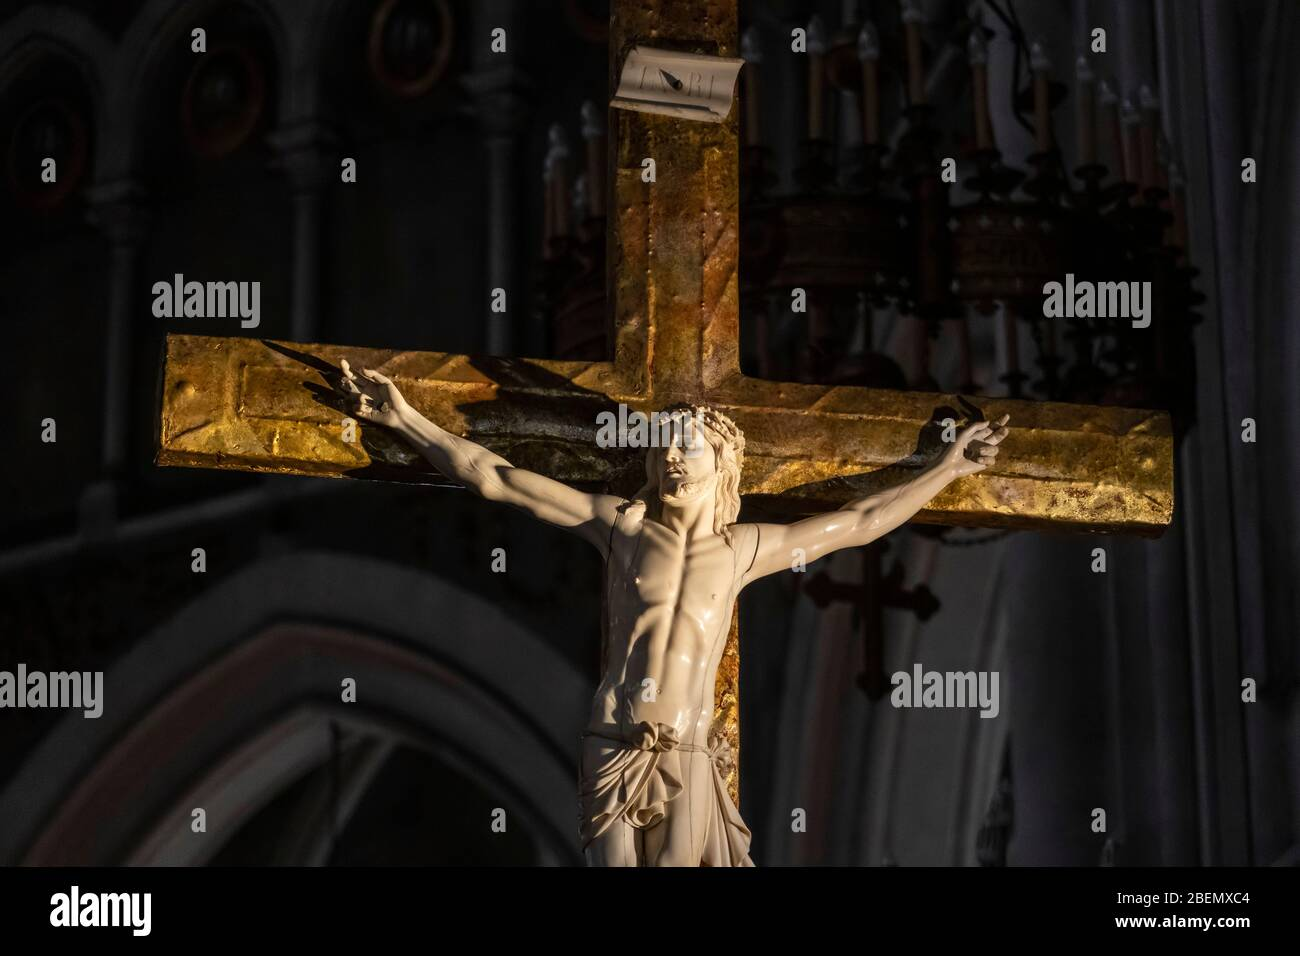 Close up of a sculpture of Jesus Christ on the cross at the Basilica of Our Lady of the Rosary in Lourdes, France, Europe Stock Photo